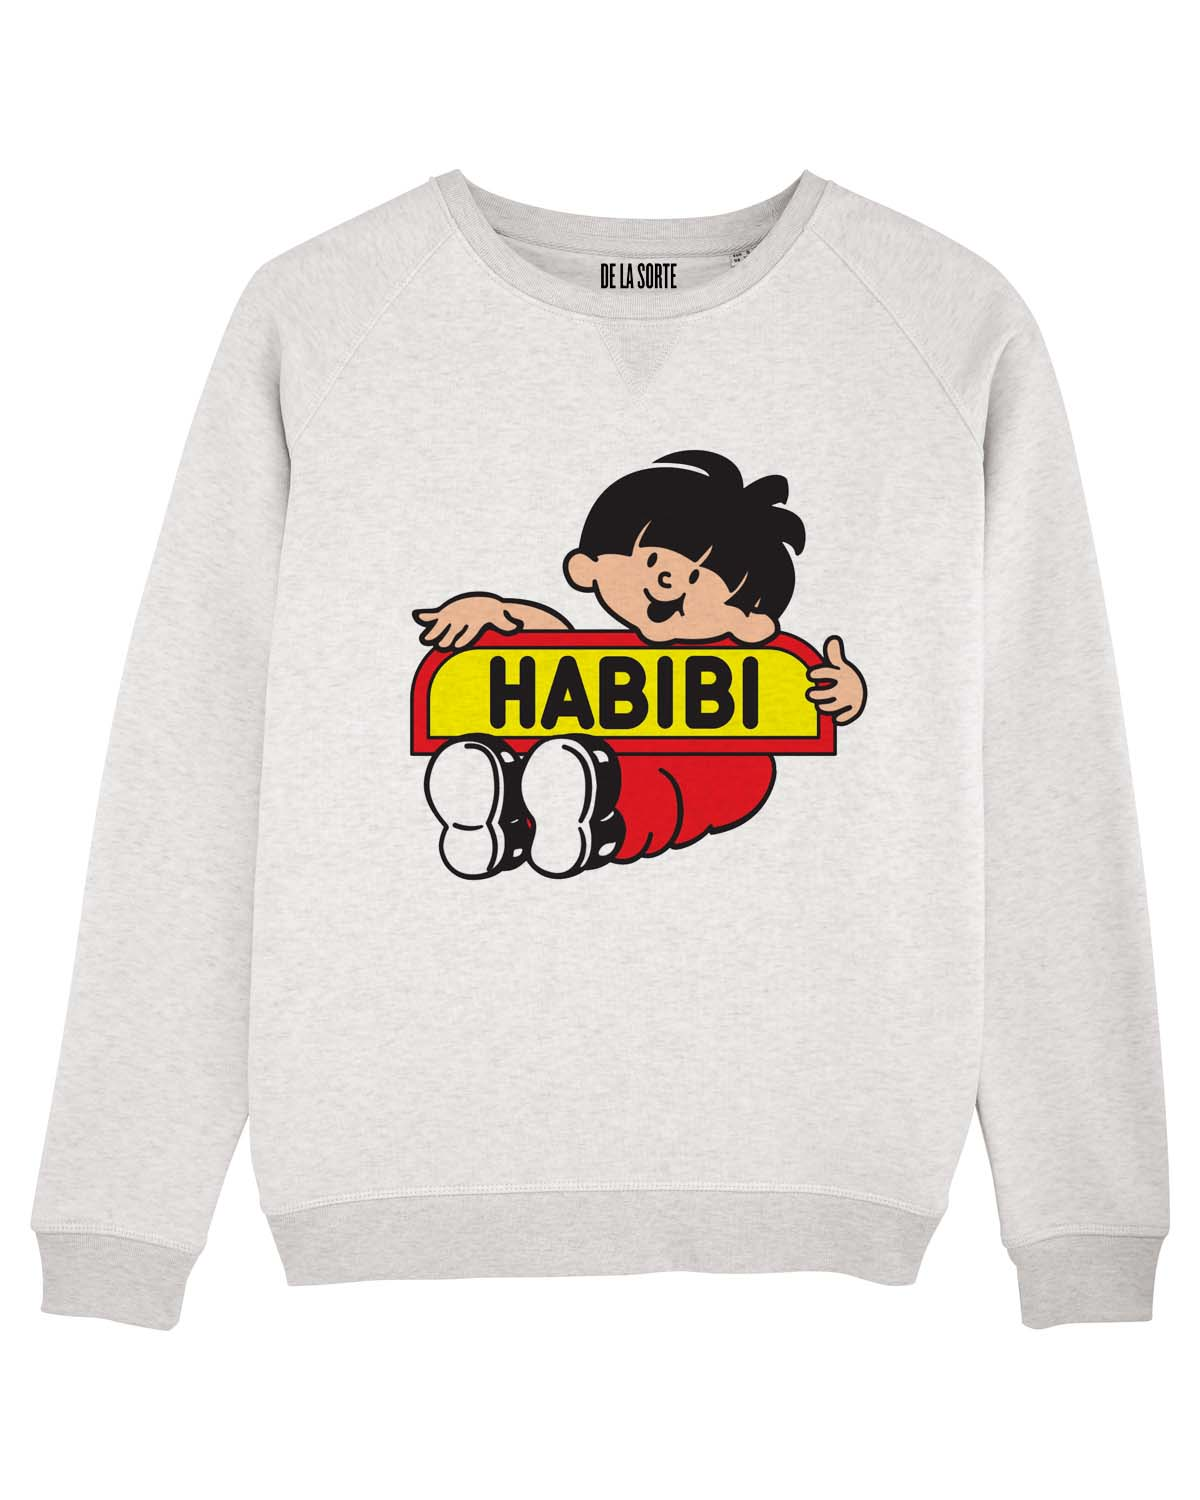 sweat habibi Delasorte